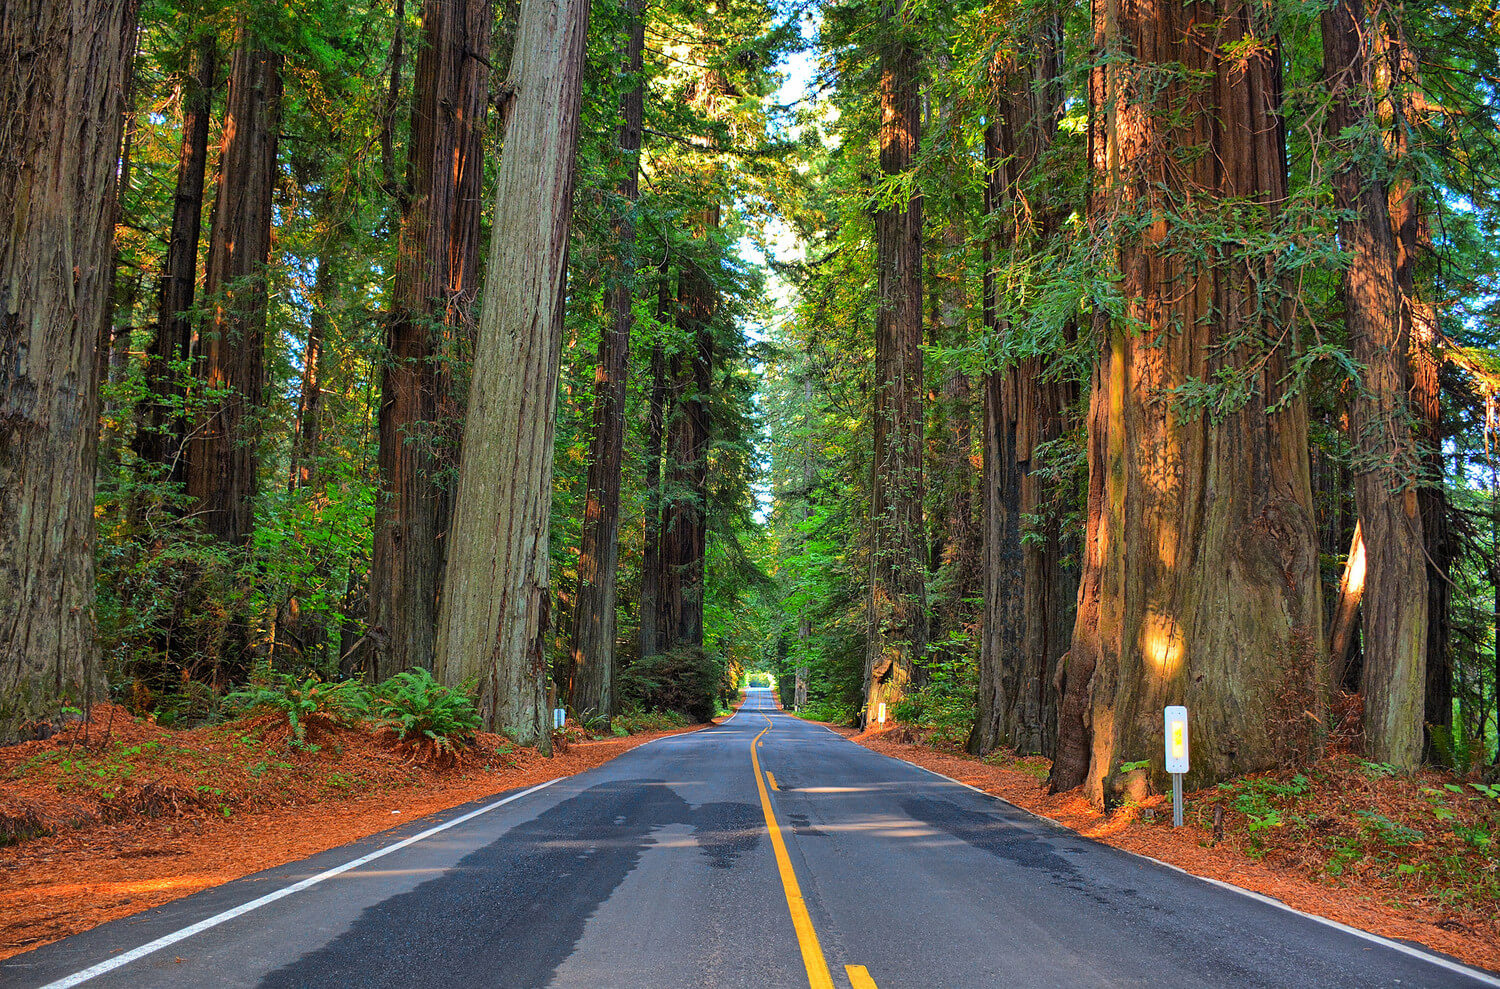 18 Tips for Reducing Your Car's Carbon Footprint